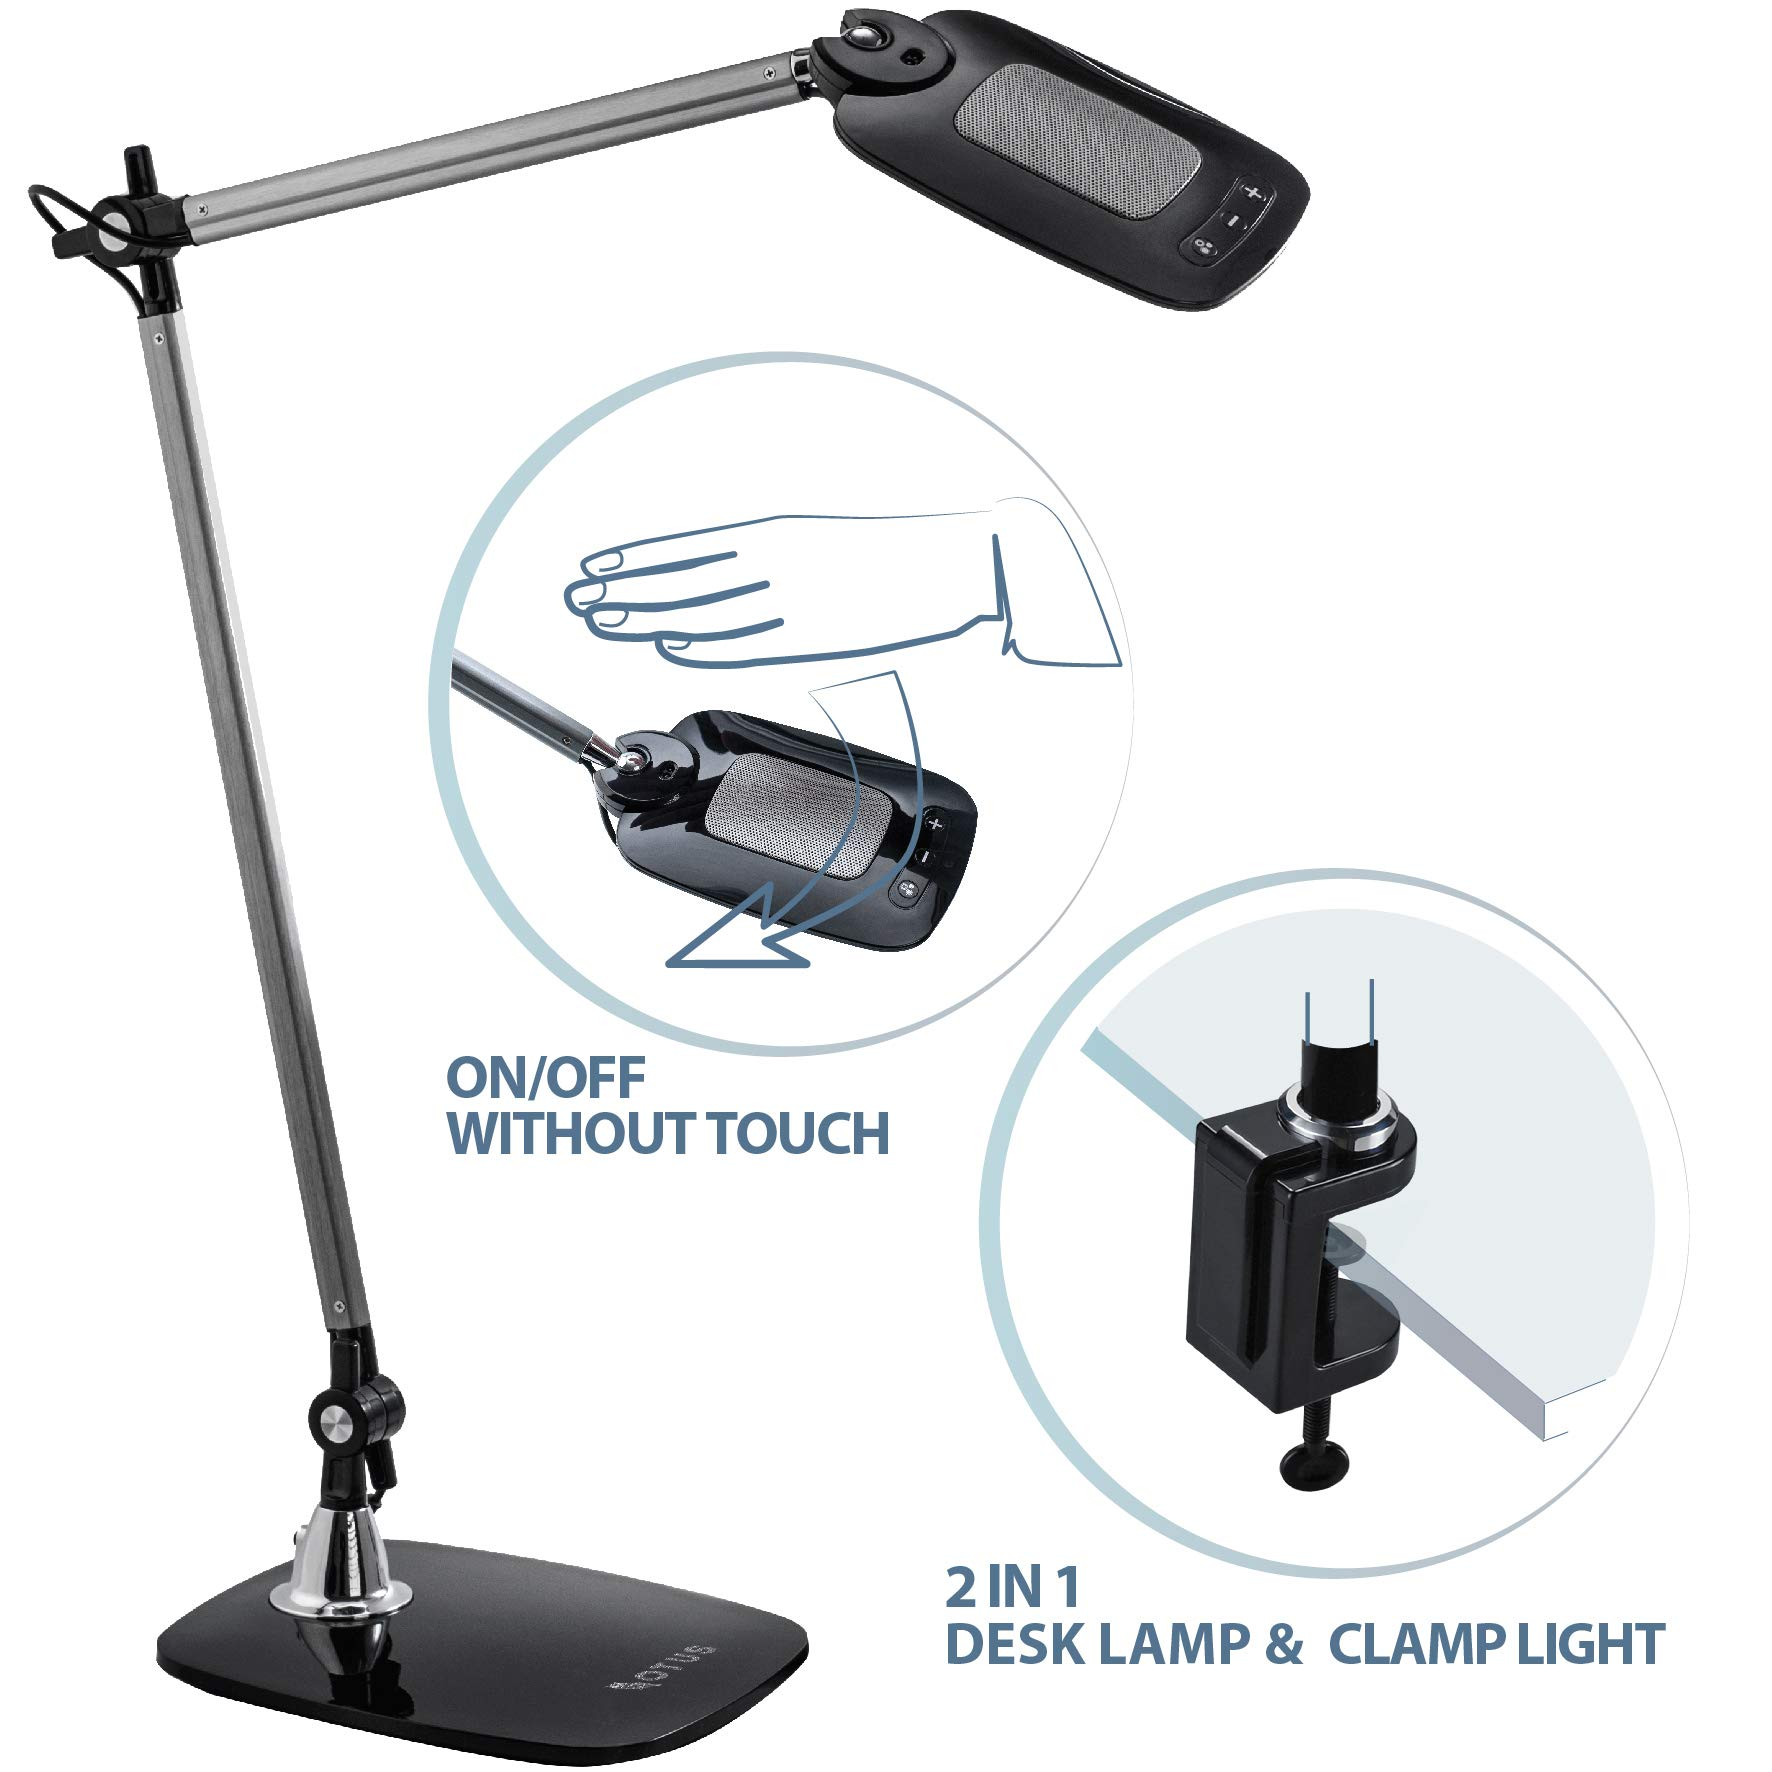 OTUS Architect Desk Lamp Office with Clamp - Gesture Control - Swing Arm Drafting LED Table Light - Dimmable 12 Brightness 3 Color Levels - Touch Control - Memory Function - 10W by OTUS